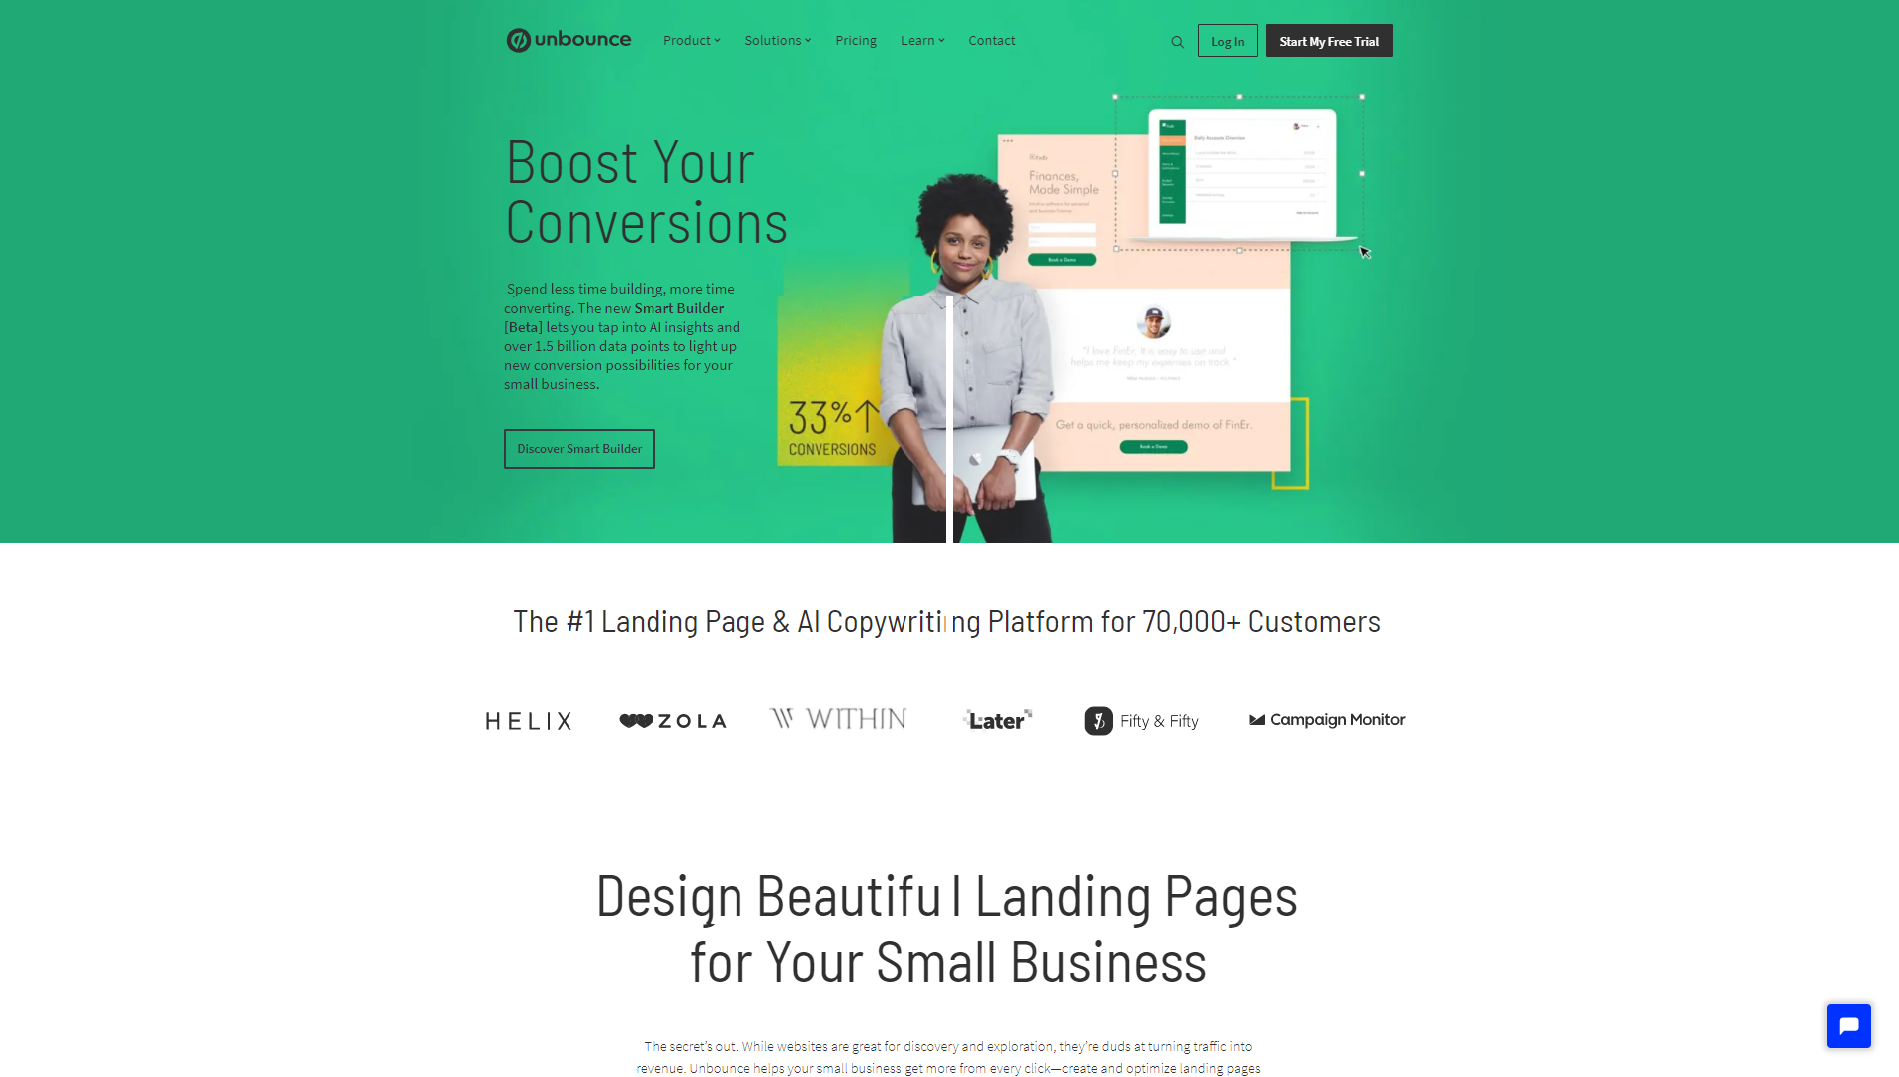 The Unbounce homepage that promotes their optimization tool and features a woman smiling about increasing her landing page conversions with the help of said tool.